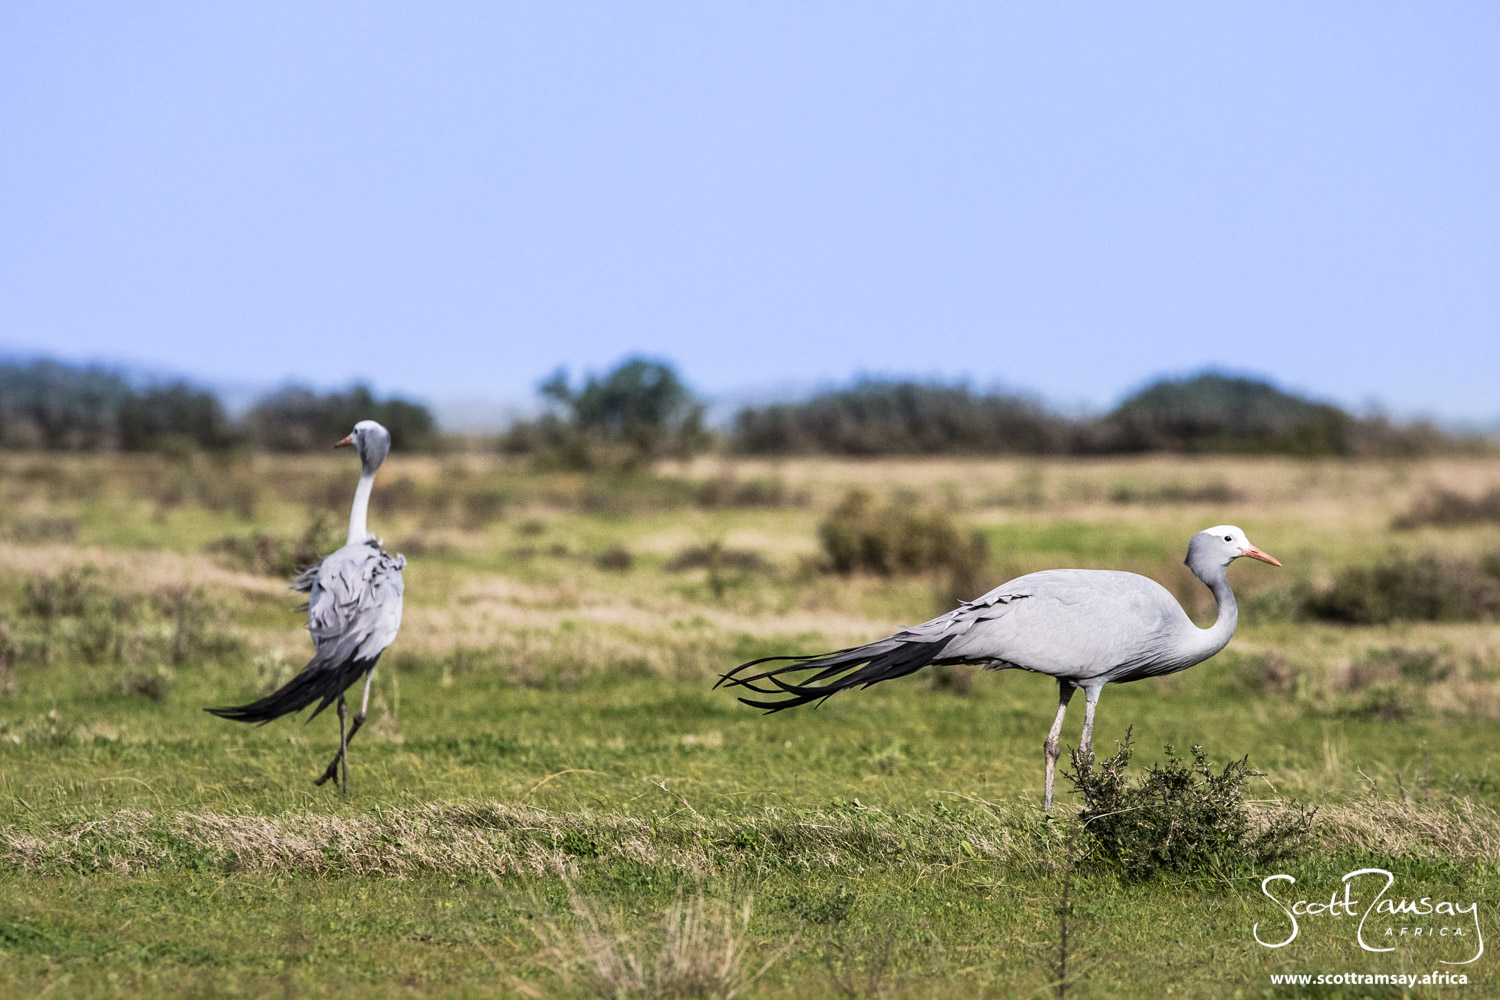 Blue cranes - South Africa's national bird - in the farm fields adjacent to the reserve